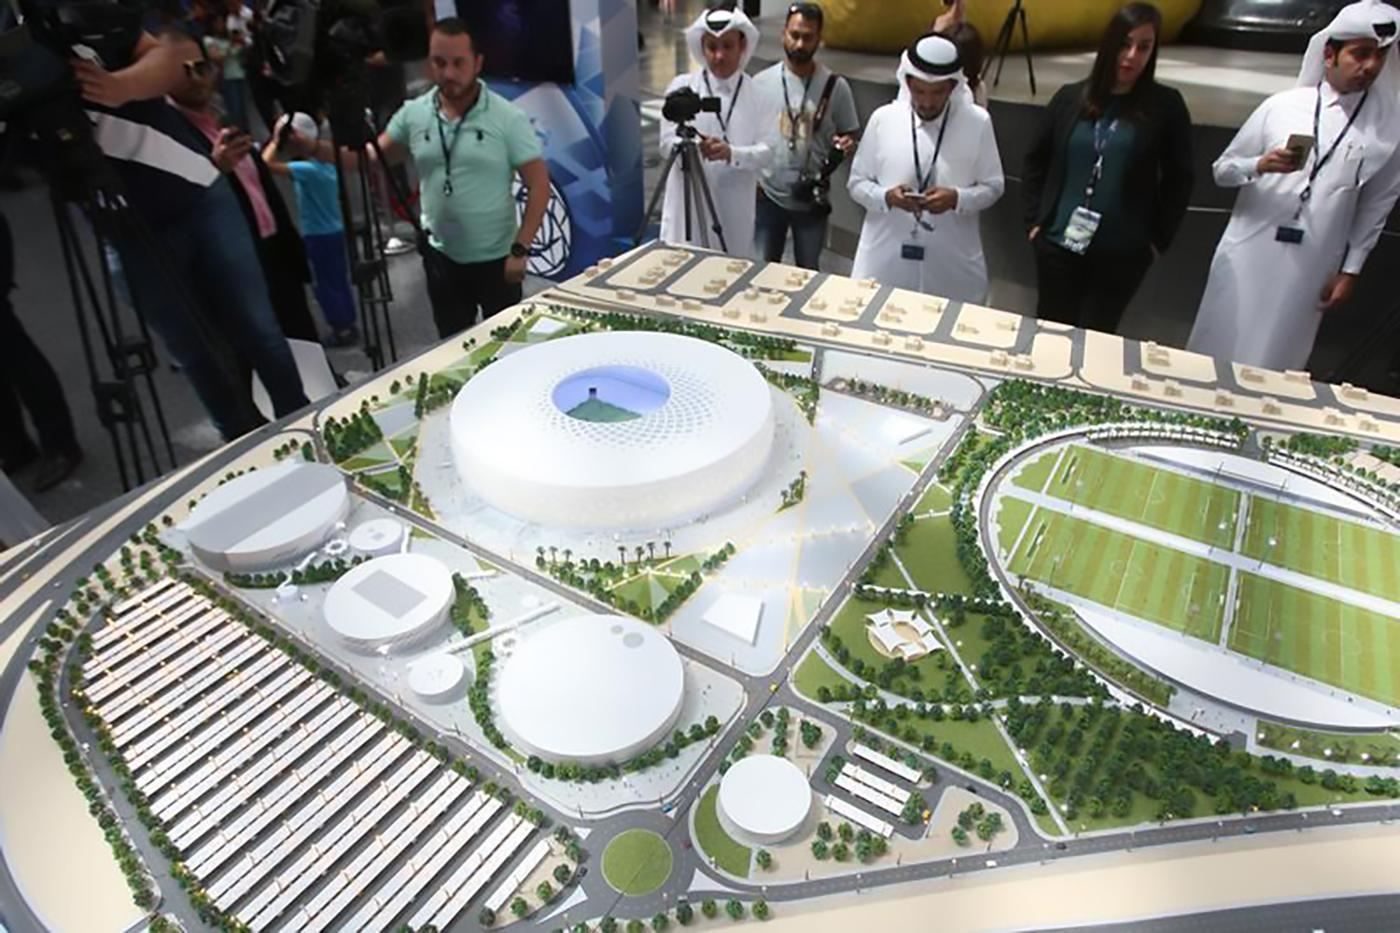 People look at a model of Al Thumama stadium during an unveiling ceremony at Hamad International Airport in Doha, Qatar, August 24, 2017. © 2017 REUTERS/Naseem Zeitoon